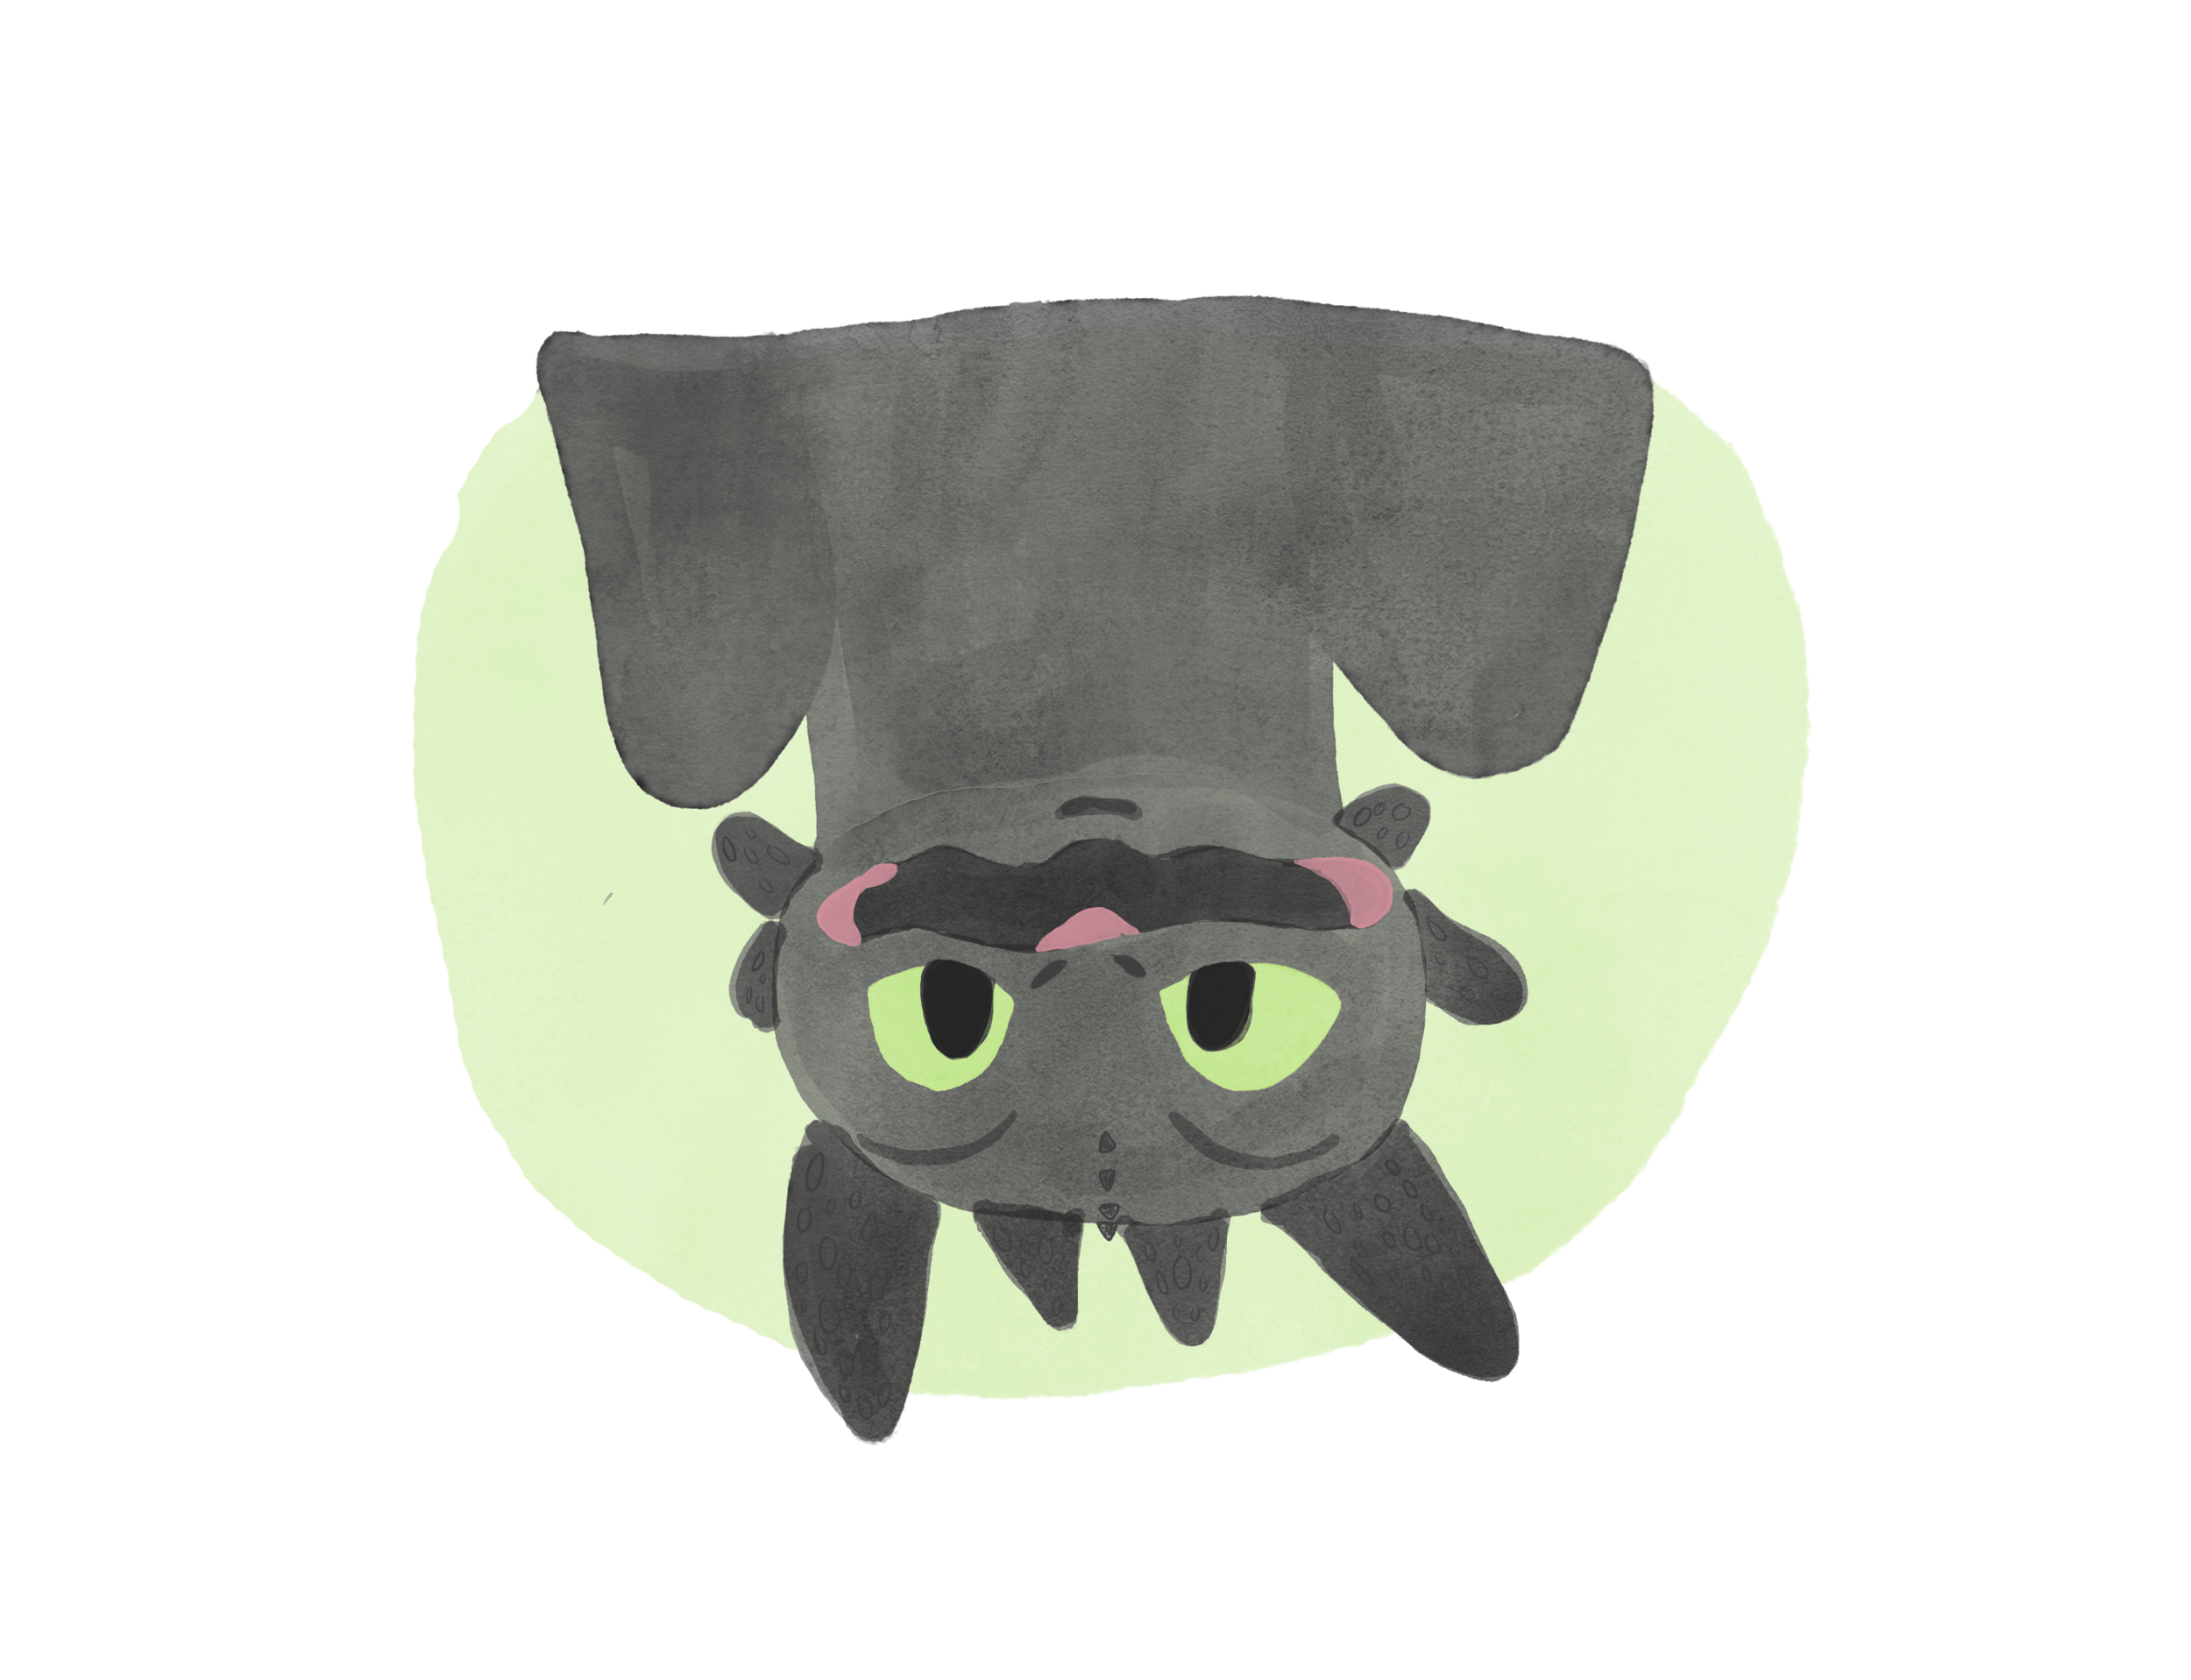 Day 27 - Toothless.png